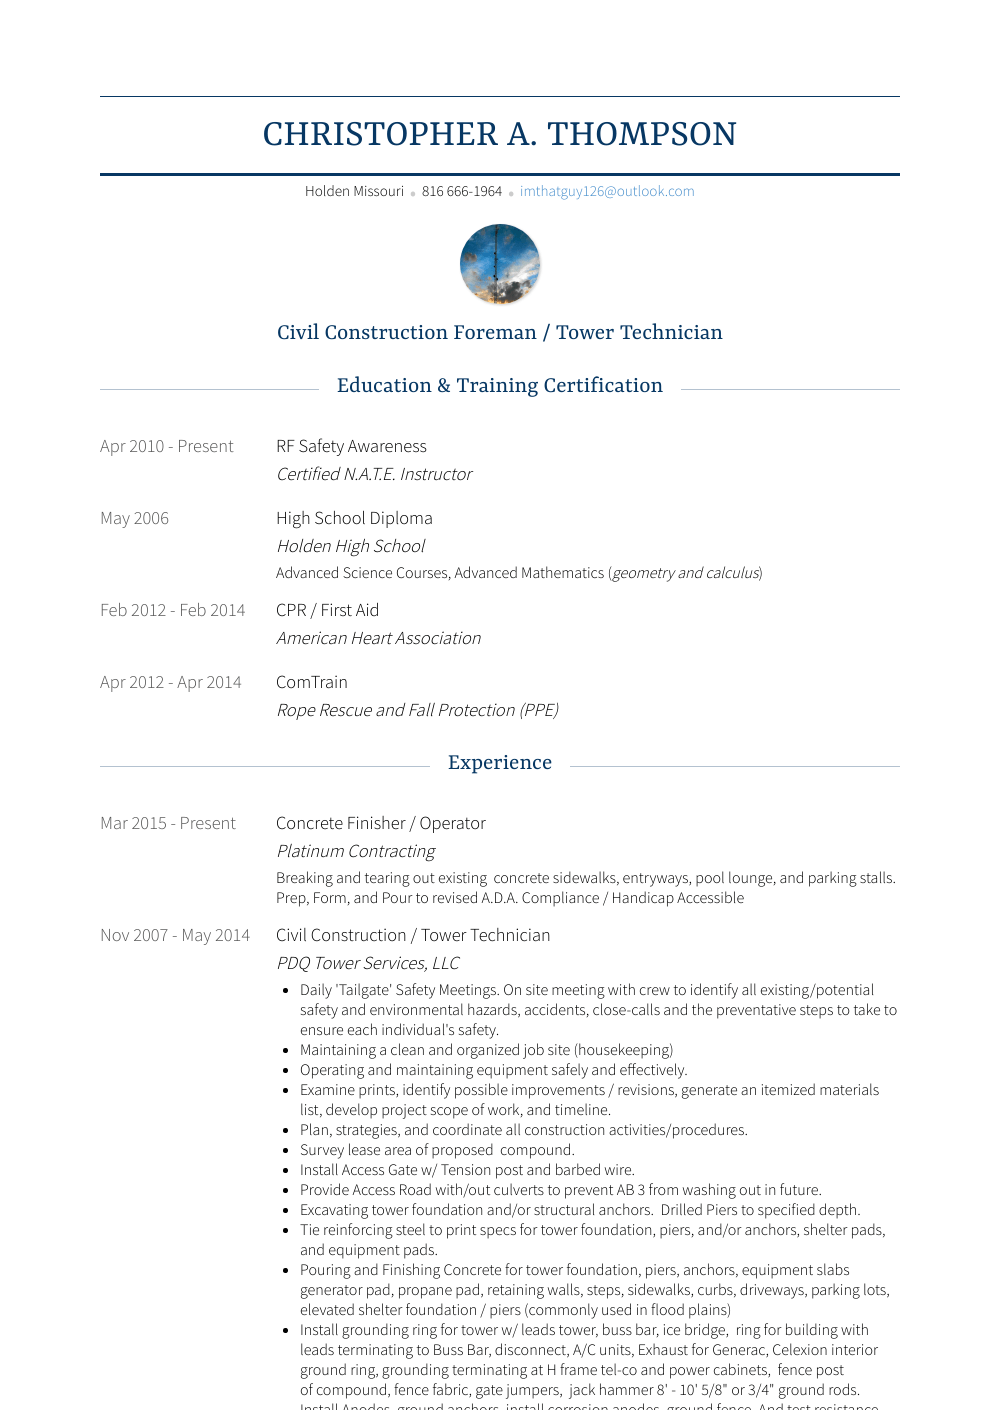 Concrete Finisher Resume Sample